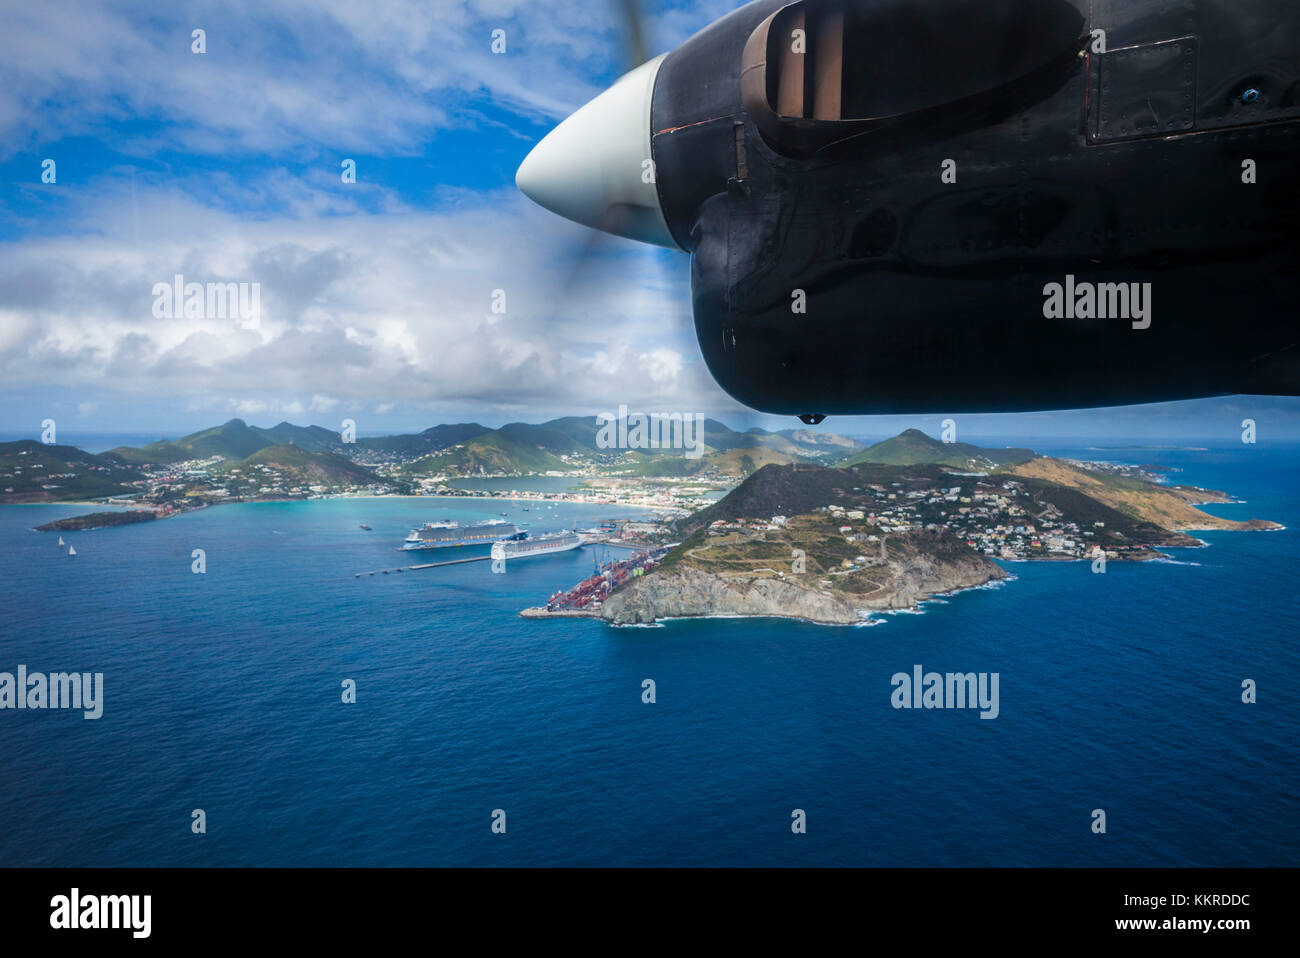 Netherlands, Sint Maarten, Philipsburg, aerial view from propellor-driven aircraft - Stock Image